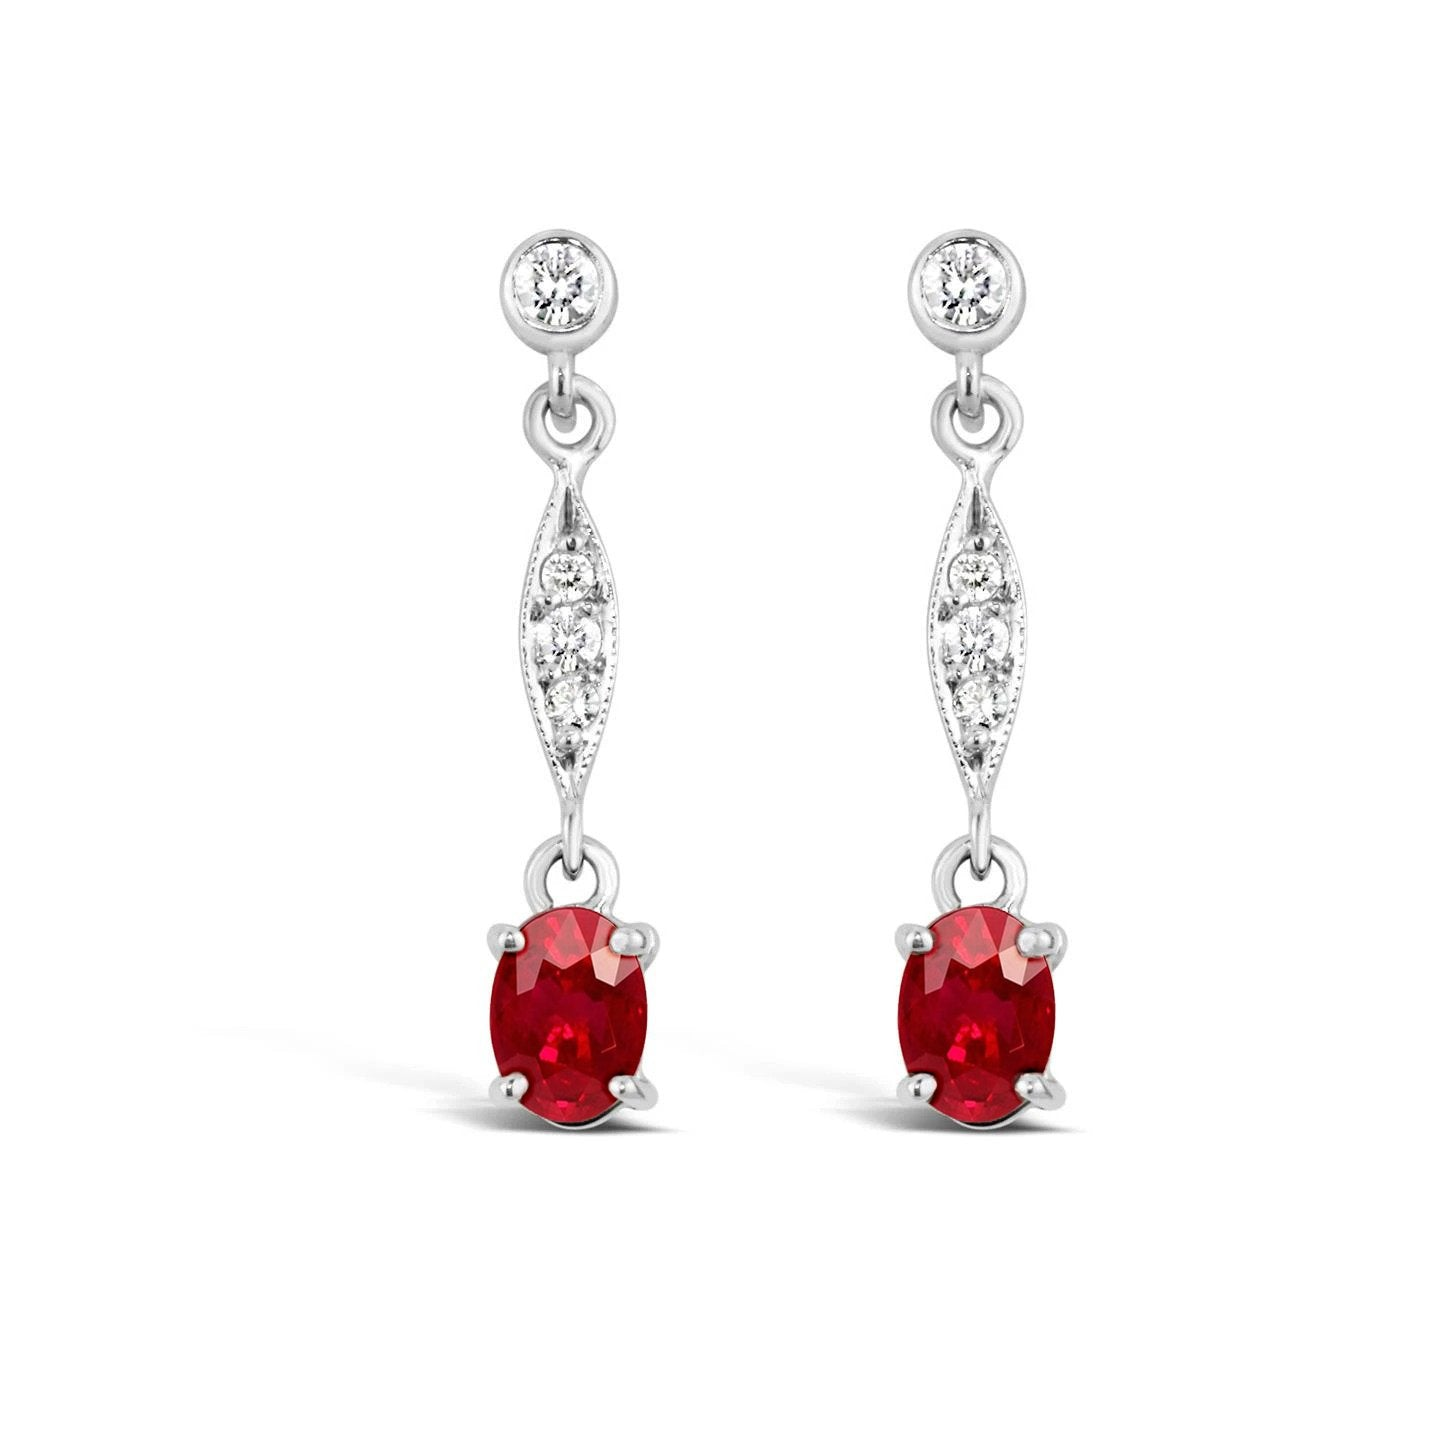 White Gold 14K 4.80 Carats Ruby And Diamonds Studs Earrings New Gemstone Earring